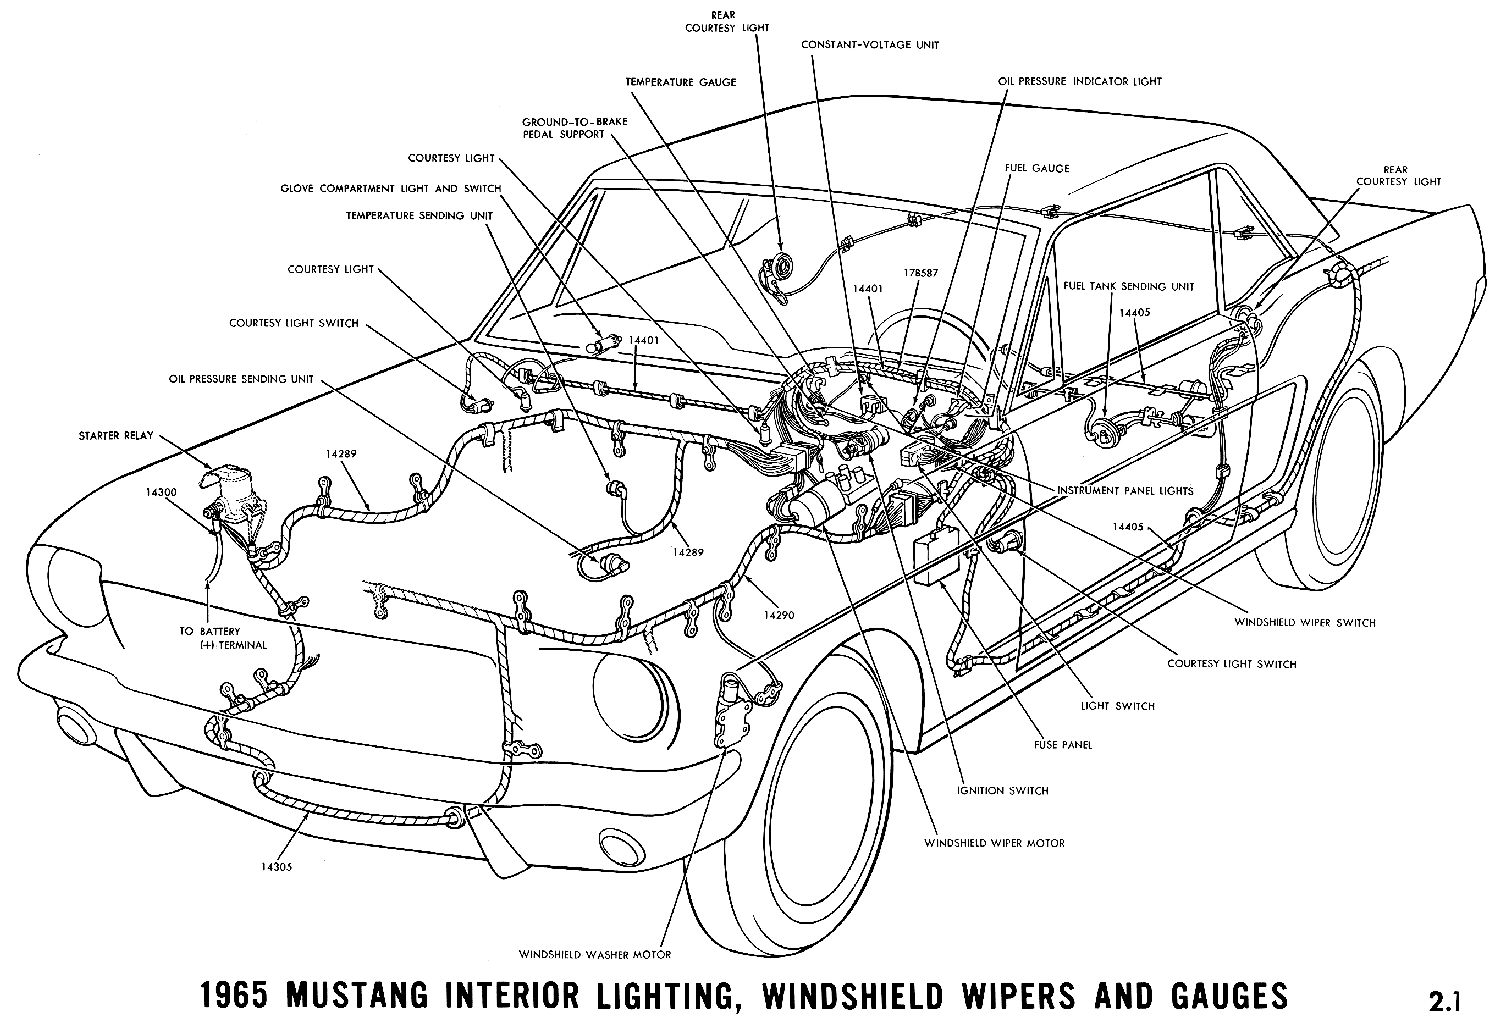 1965 Mustang Dash Wiring Diagram - WIRE Center •